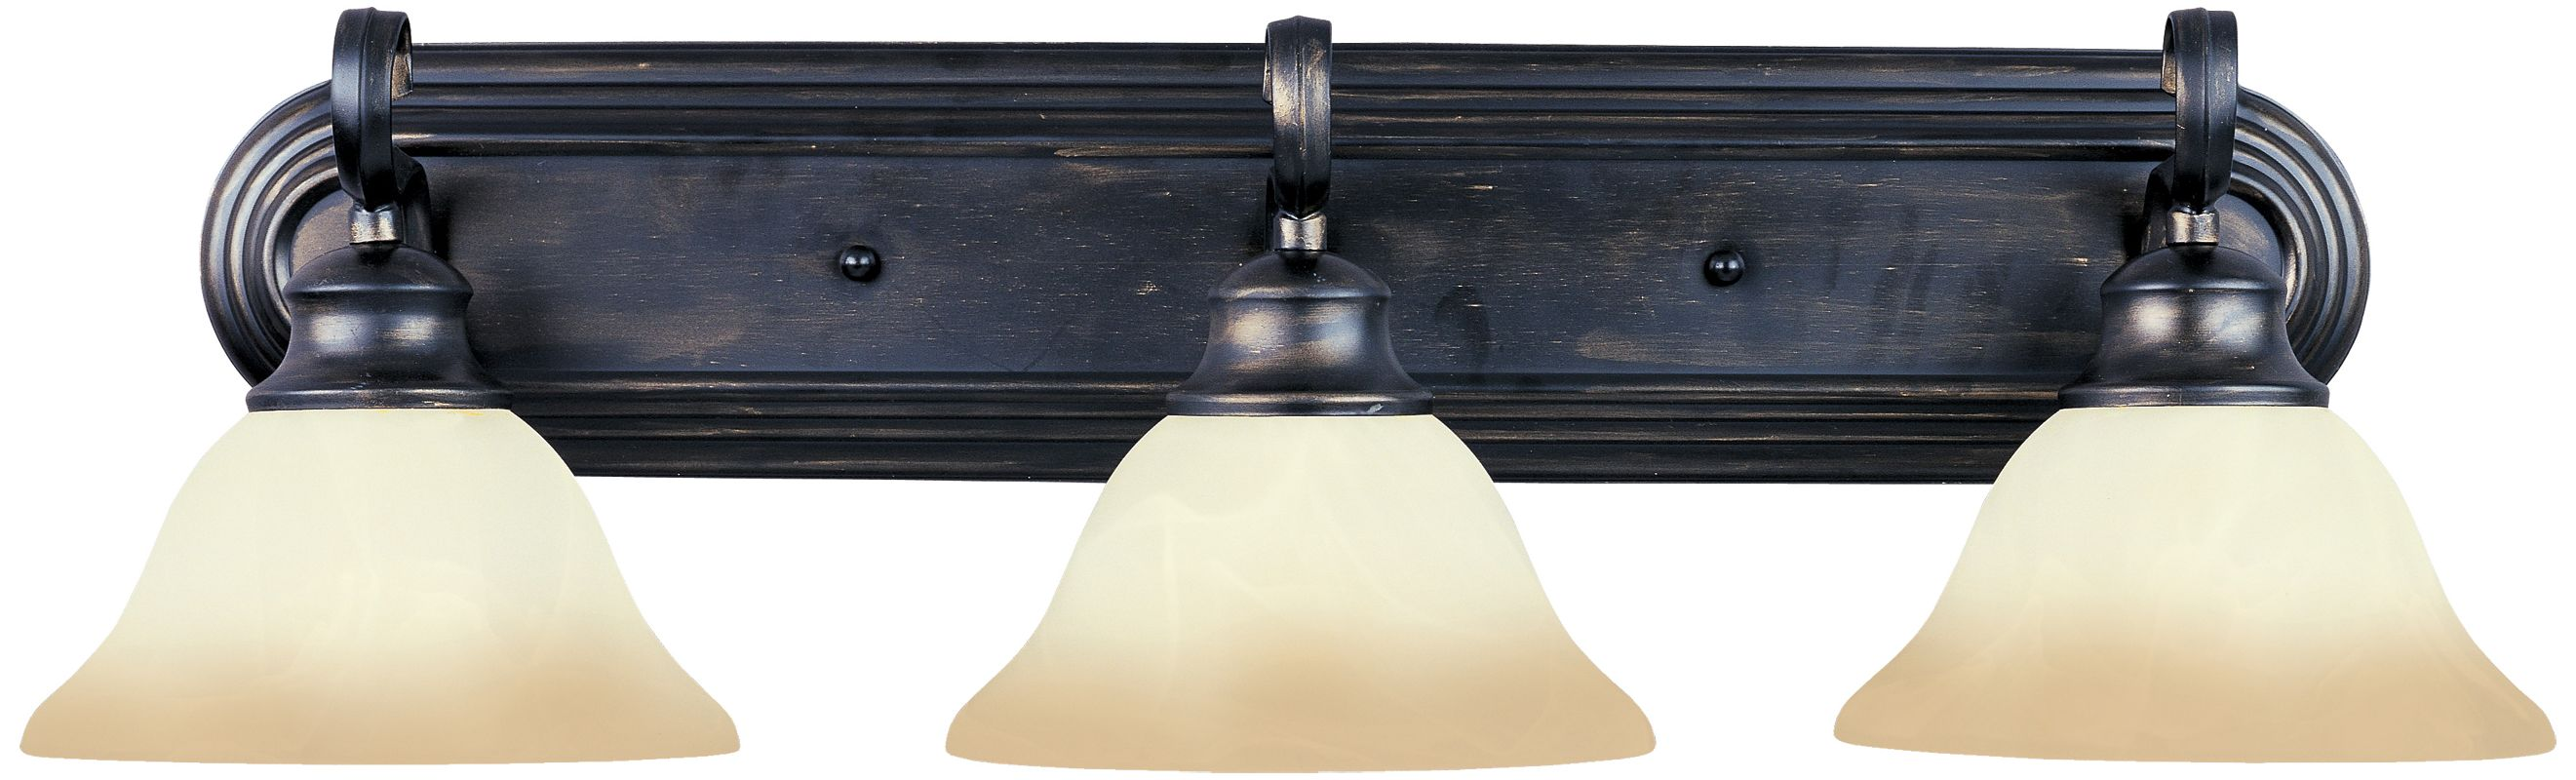 """Maxim 8023 3 Light 26.75"""" Wide Bathroom Fixture from the Pacific"""